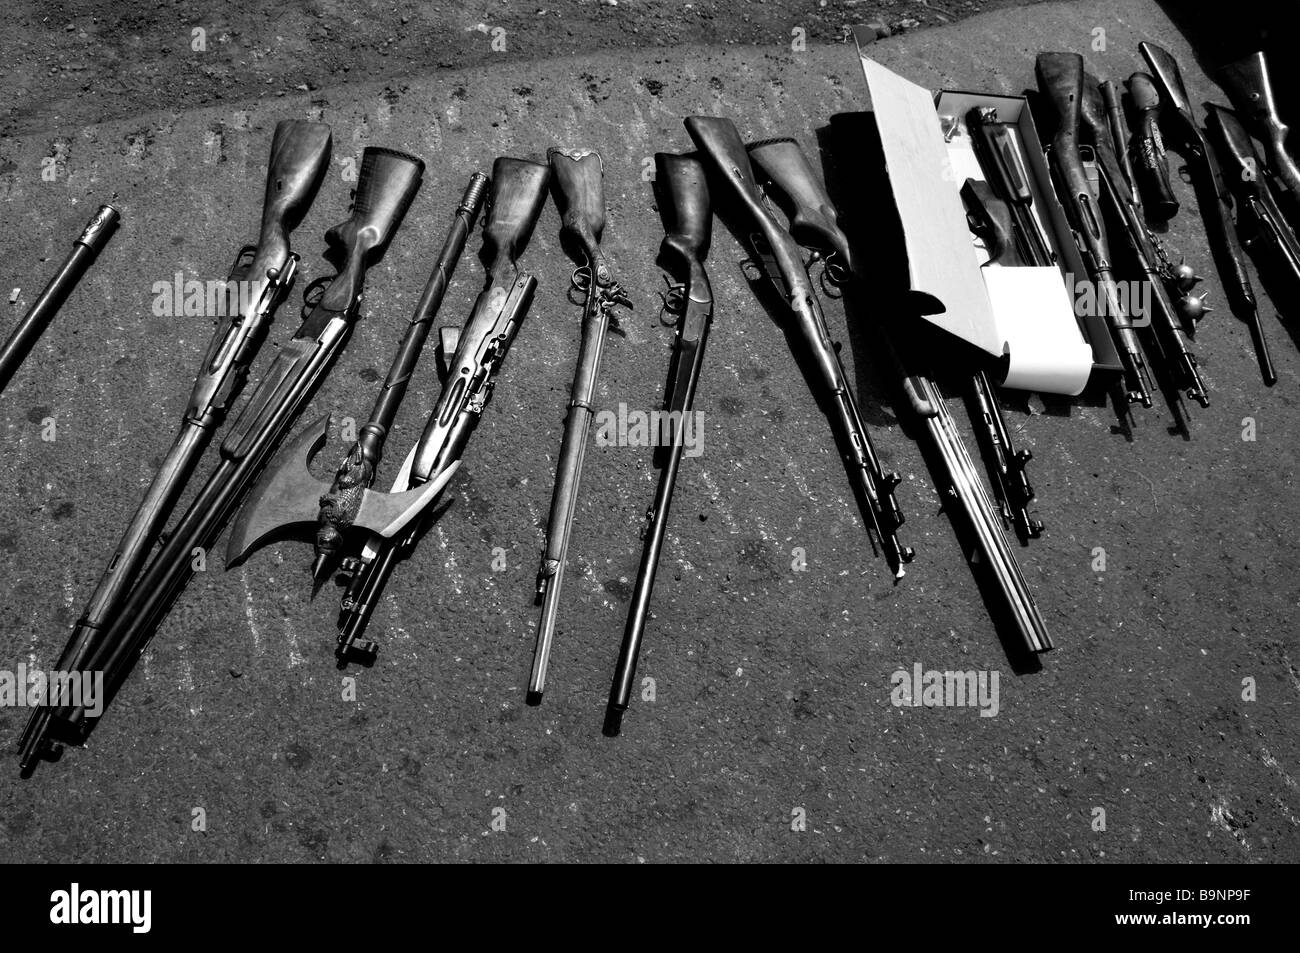 Collection of rifles captured by Russian forces after entering the city of Gori during the Russo-Georgian War August - Stock Image